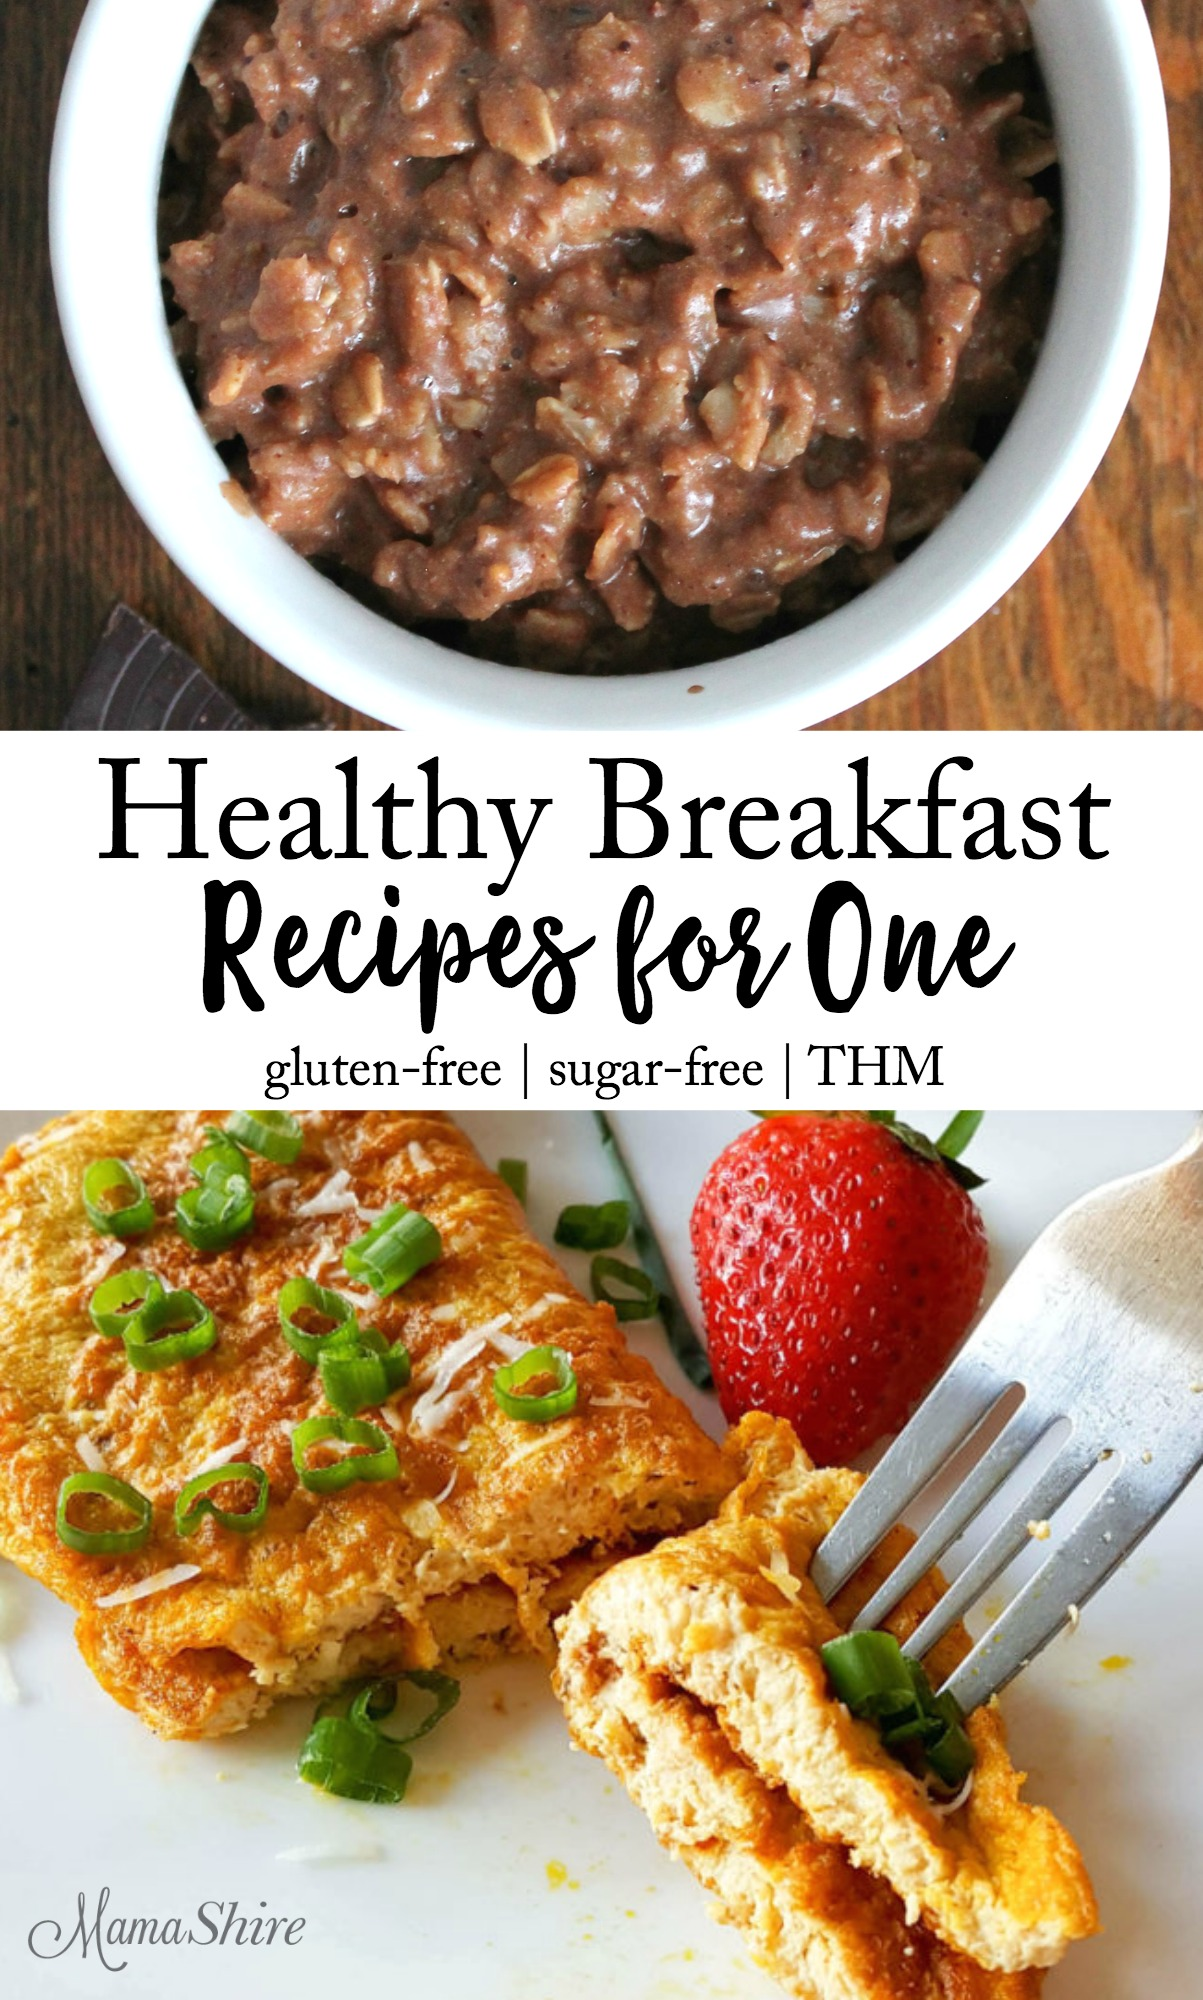 Healthy Breakfast Recipes for One - On plan with Trim Healthy Mama